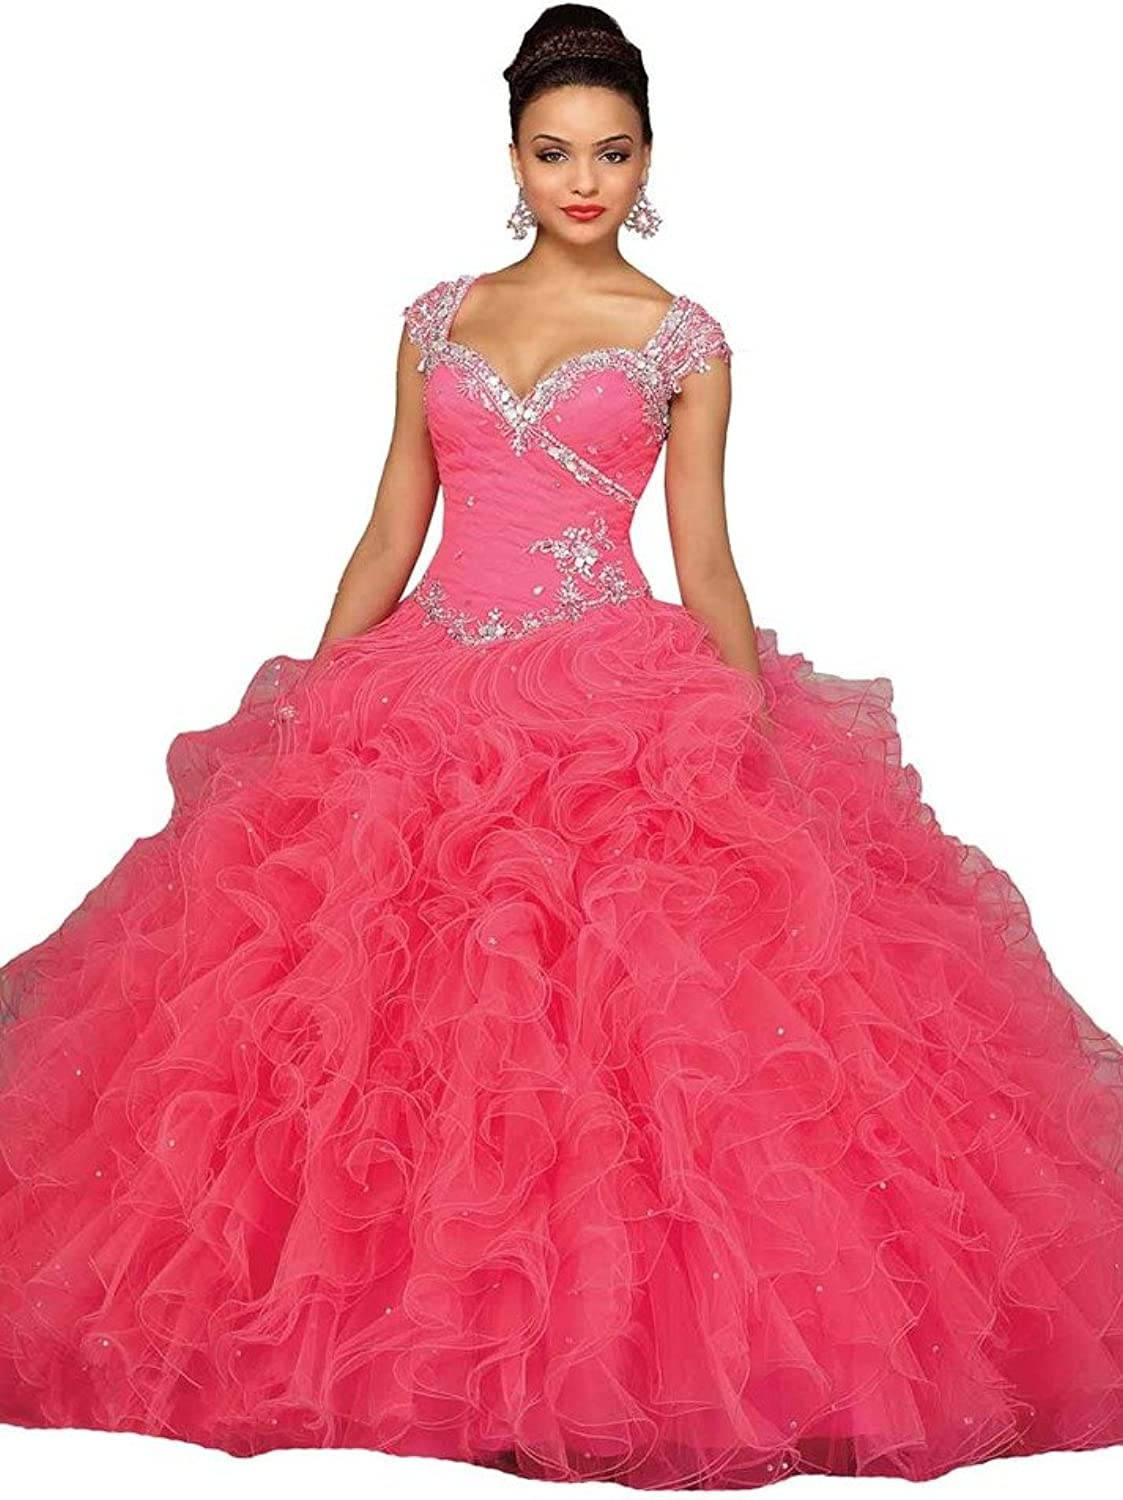 HSDJ Women's Ruched Beading Bodice Tiered Ball Gown Quinceanera Dresses 14 US Watermelon